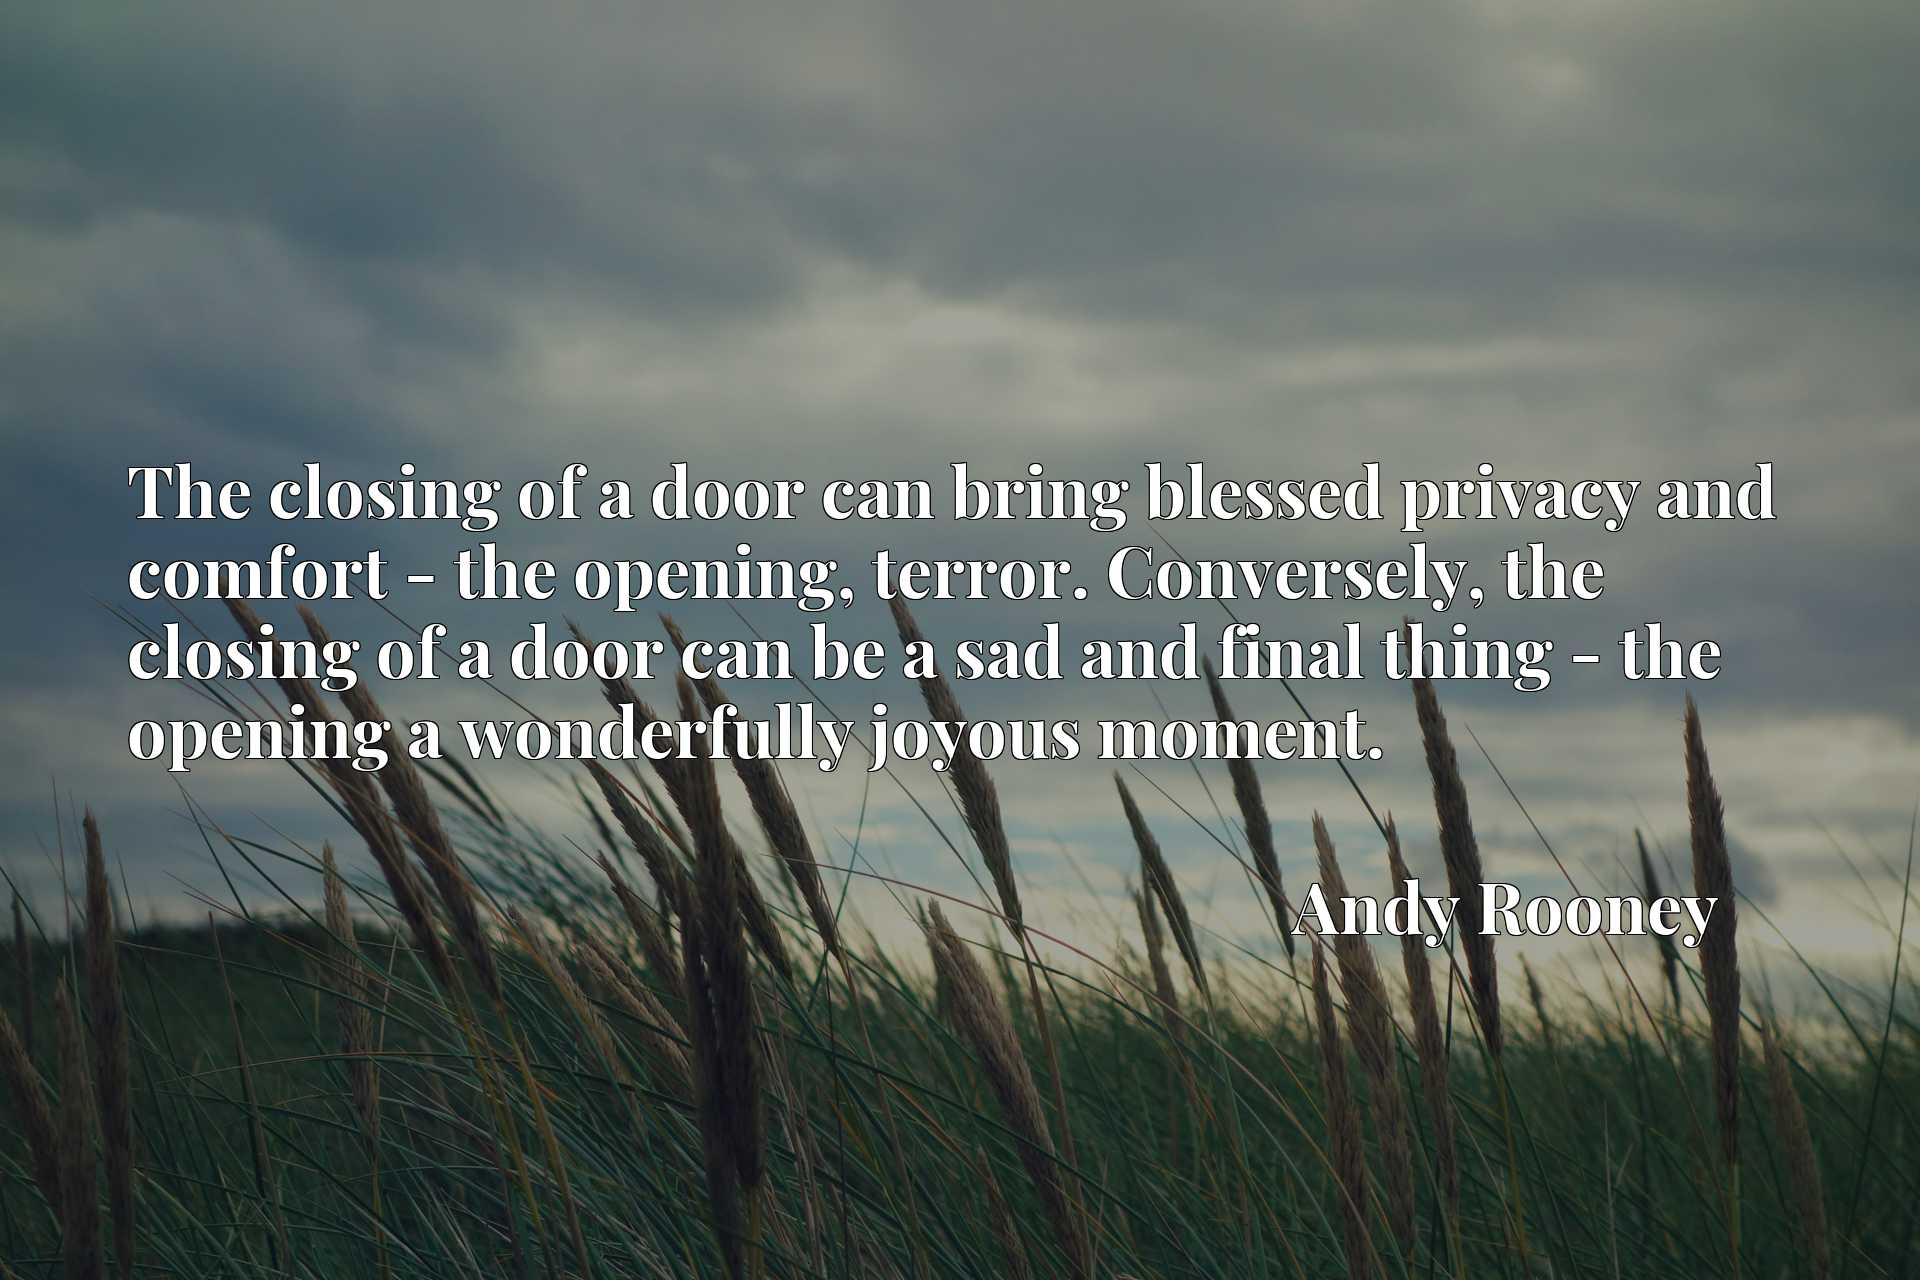 The closing of a door can bring blessed privacy and comfort - the opening, terror. Conversely, the closing of a door can be a sad and final thing - the opening a wonderfully joyous moment.